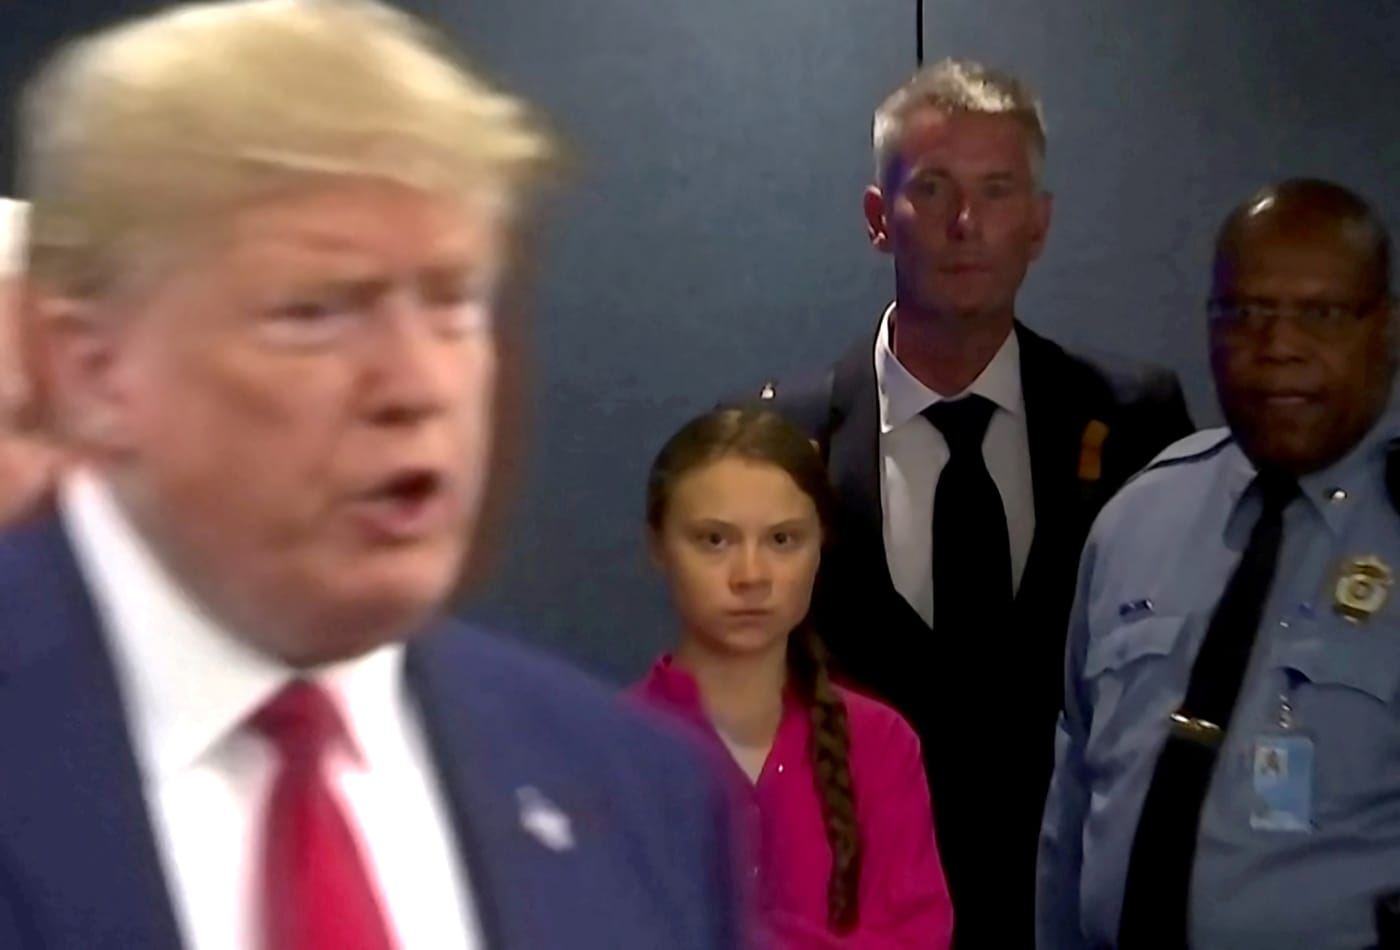 Donald Trump vs. Greta Thunberg: Davos prepares for climate crisis showdown